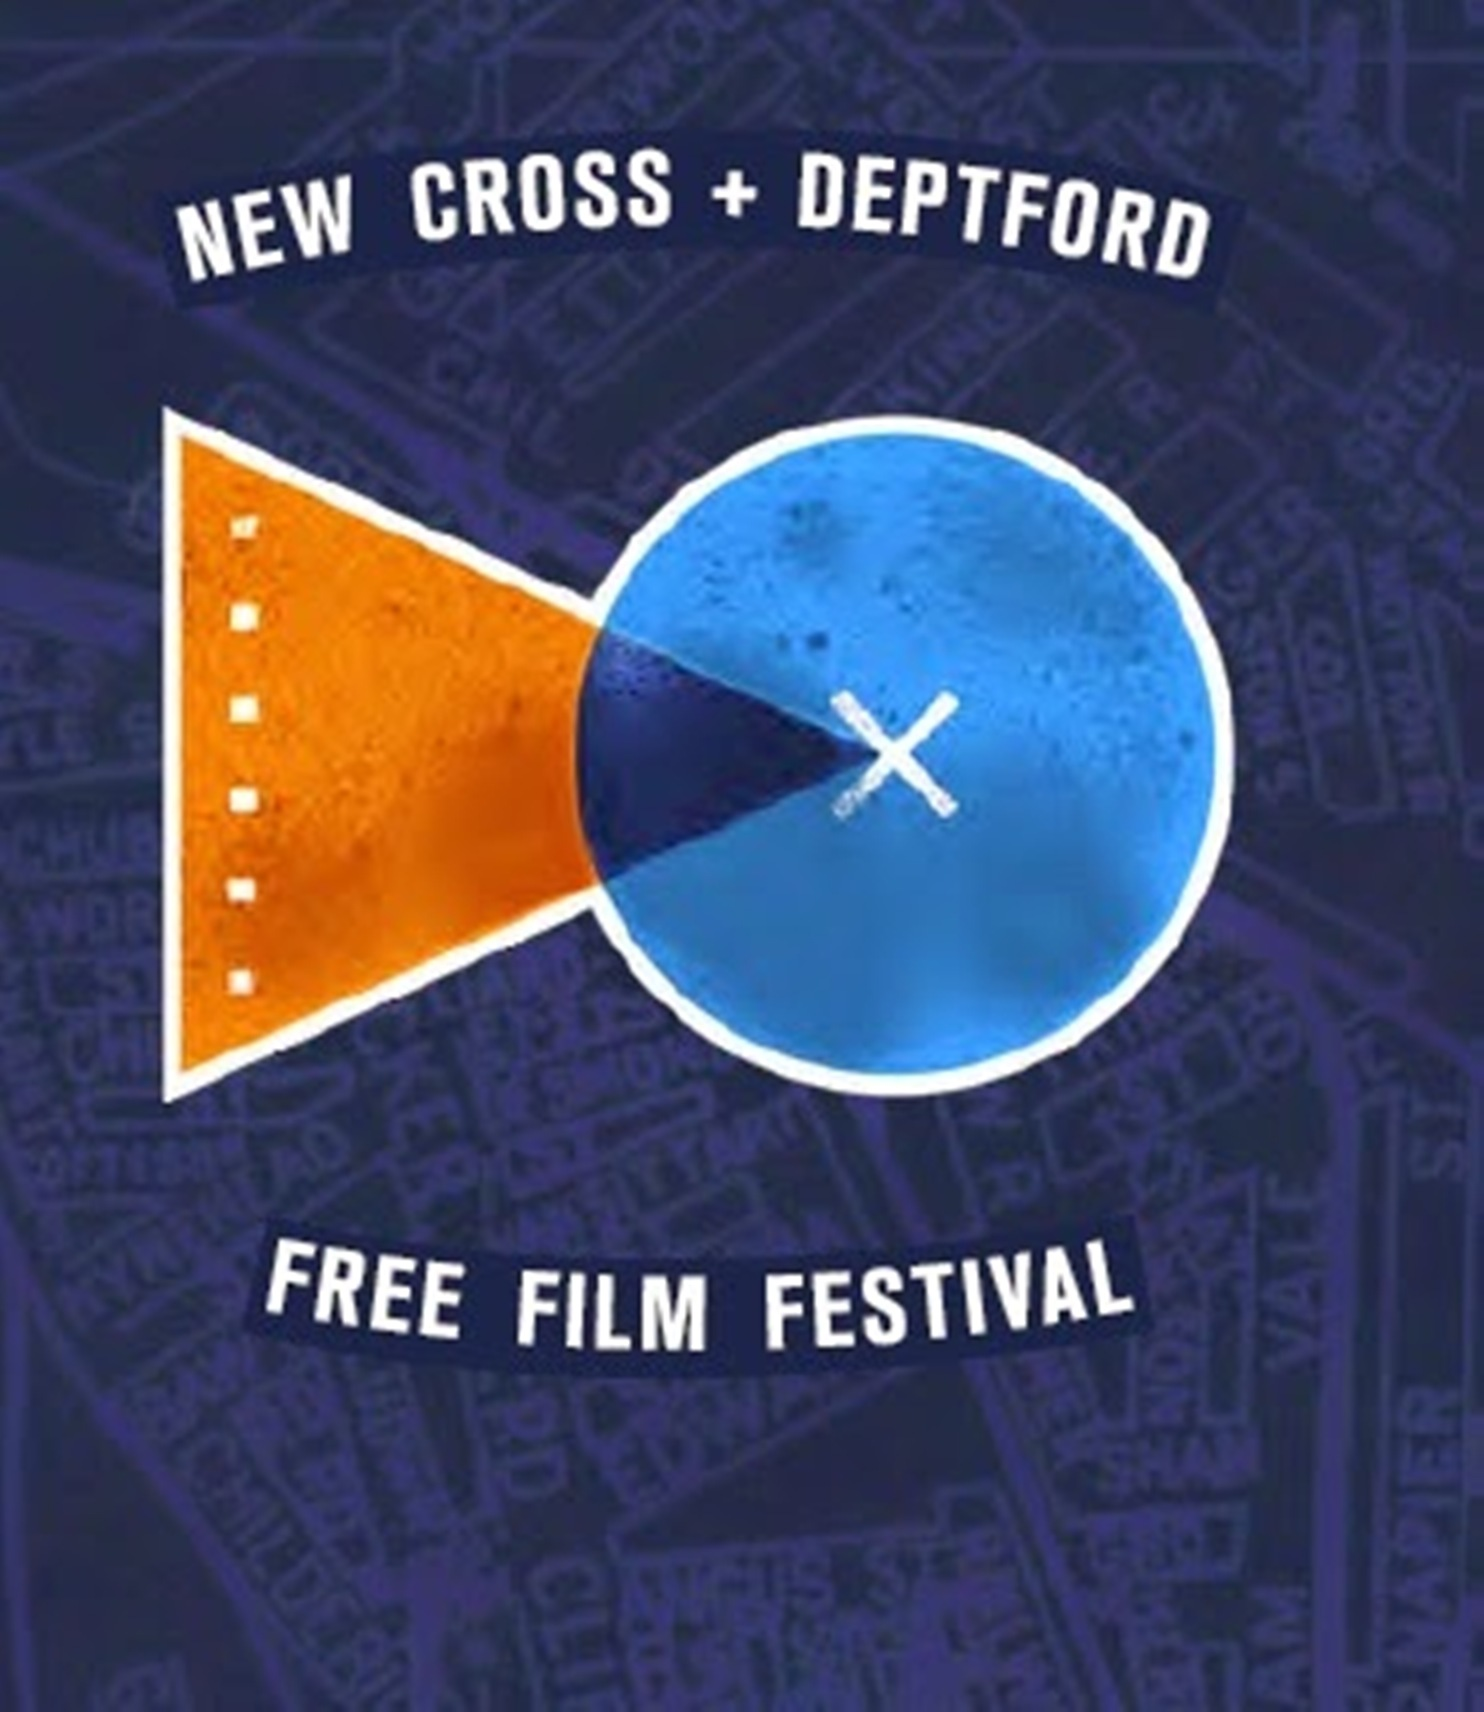 Venues announced for New Cross and Deptford Film Festival